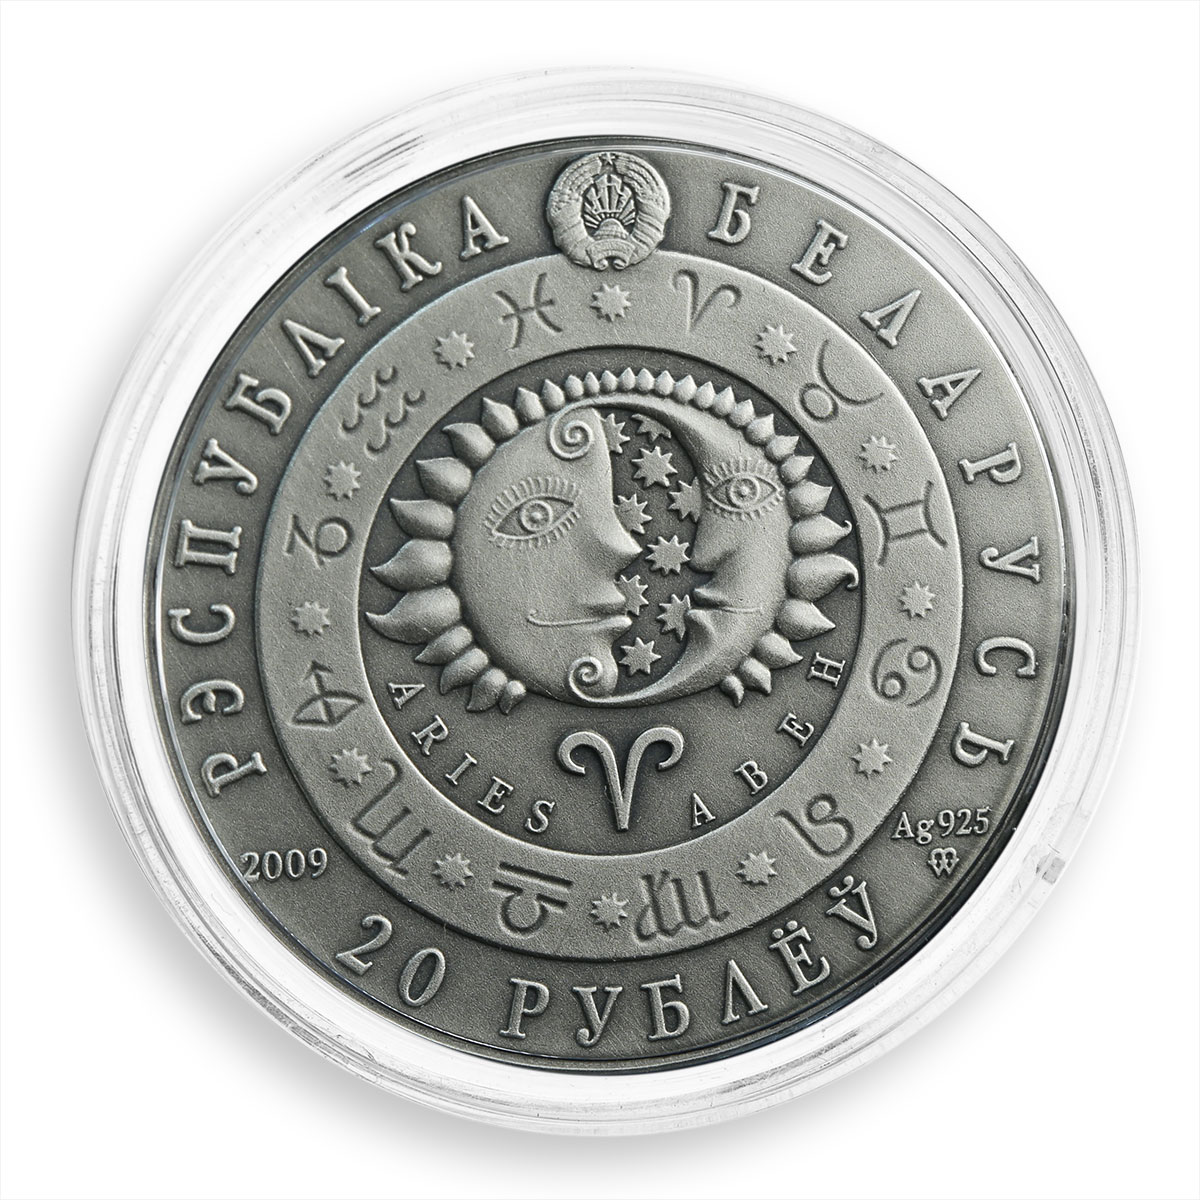 Belarus 20 rubles, Zodiac Signs, Aries, silver, zircons, coin, 2009